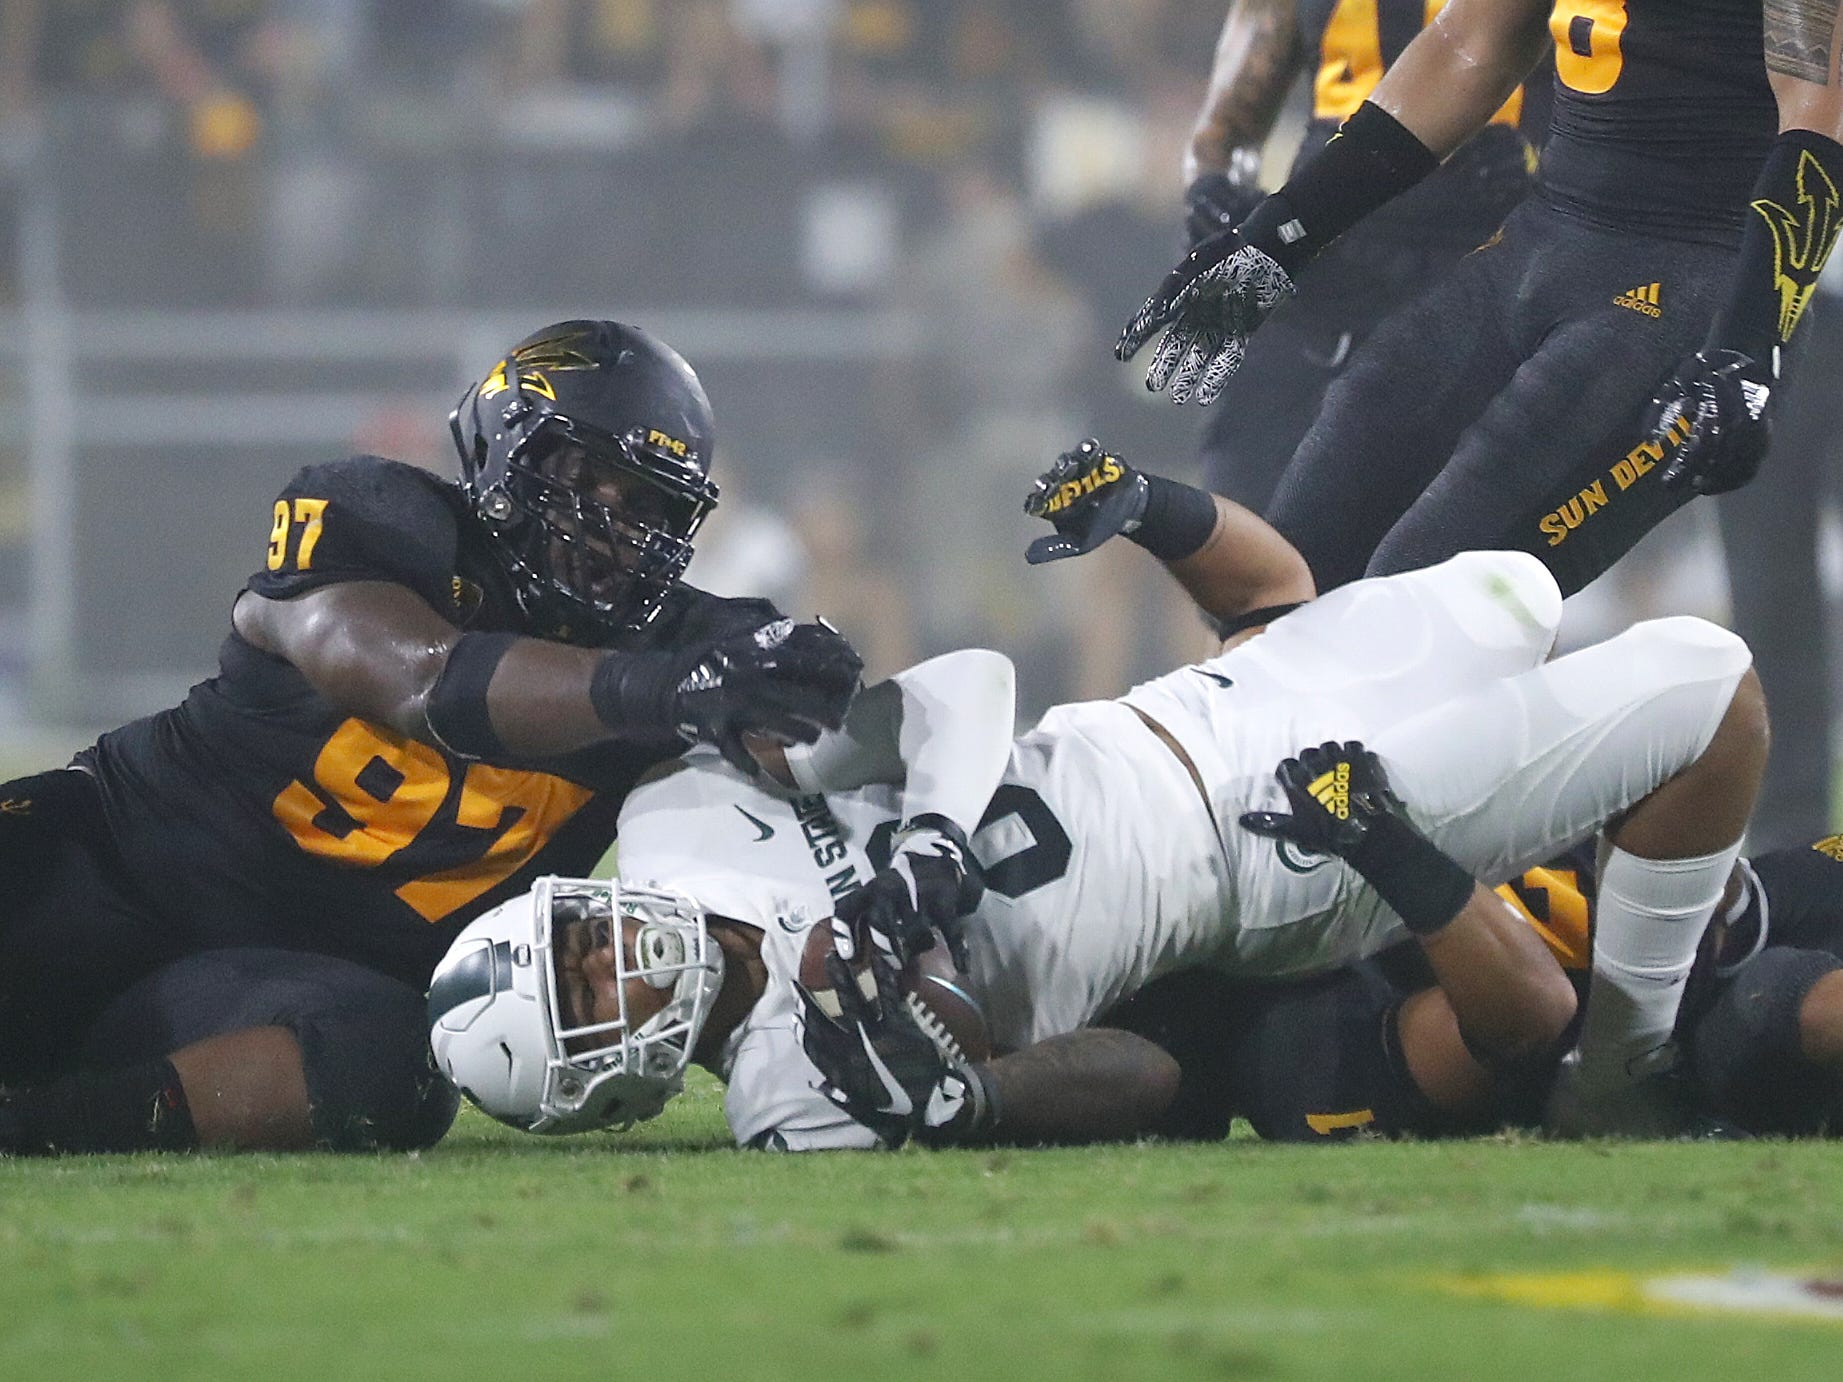 Arizona State University defenders tackle Michigan State's Jalen Nailor (8) during the second quarter at Sun Devil Stadium in Tempe, Ariz. on Sept. 8, 2018.